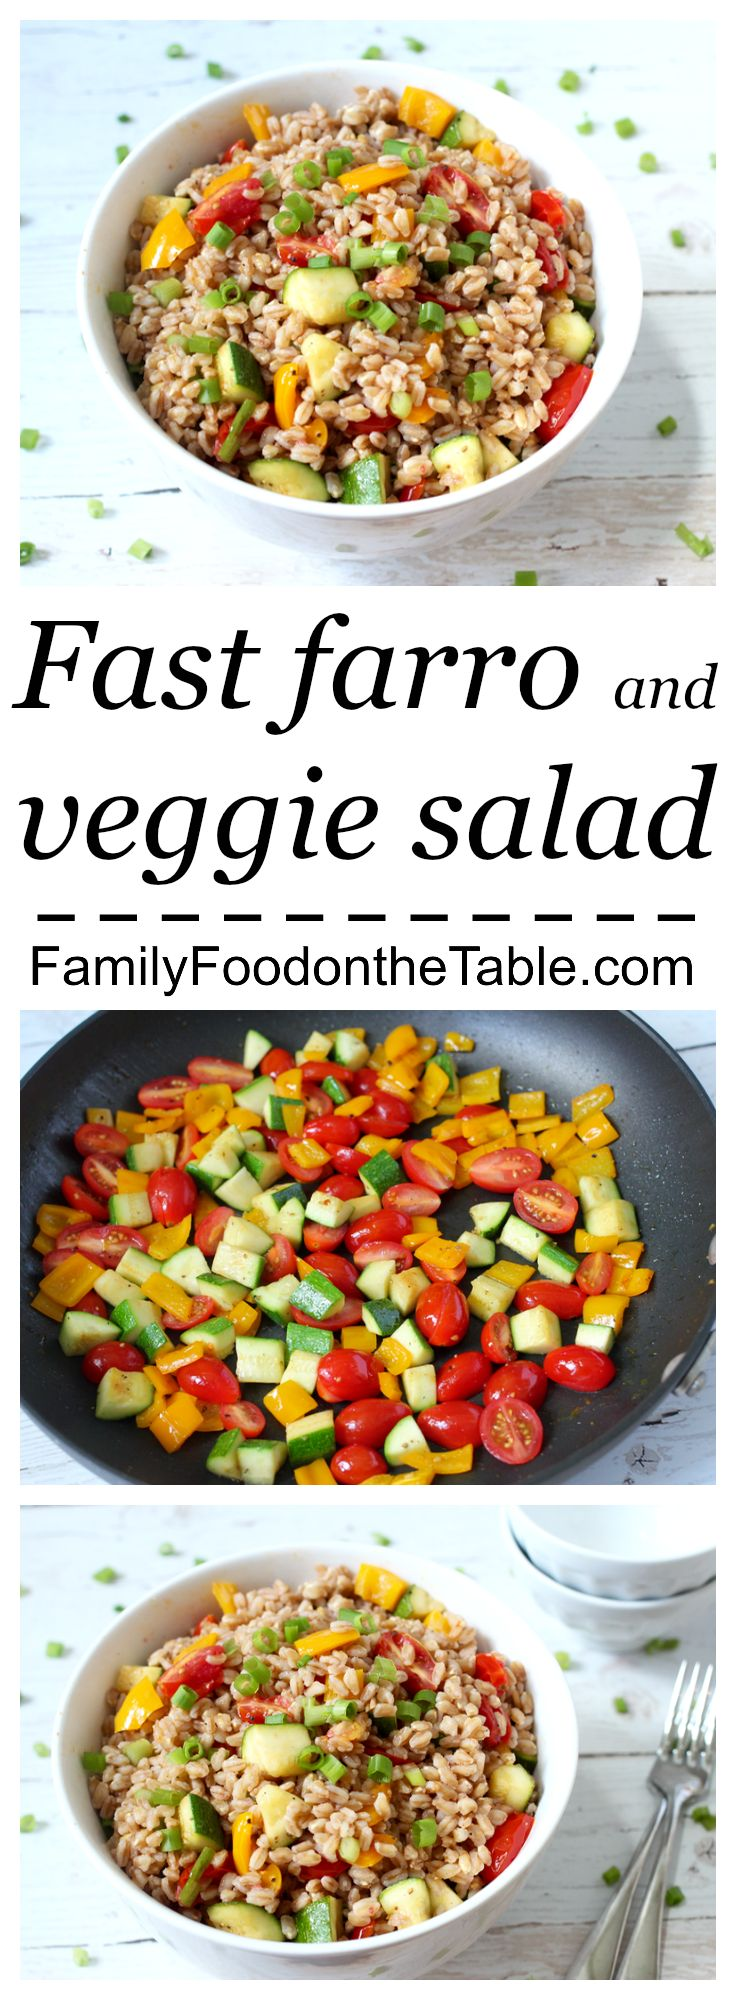 An easy veggie-packed farro salad, ready in 15 minutes!